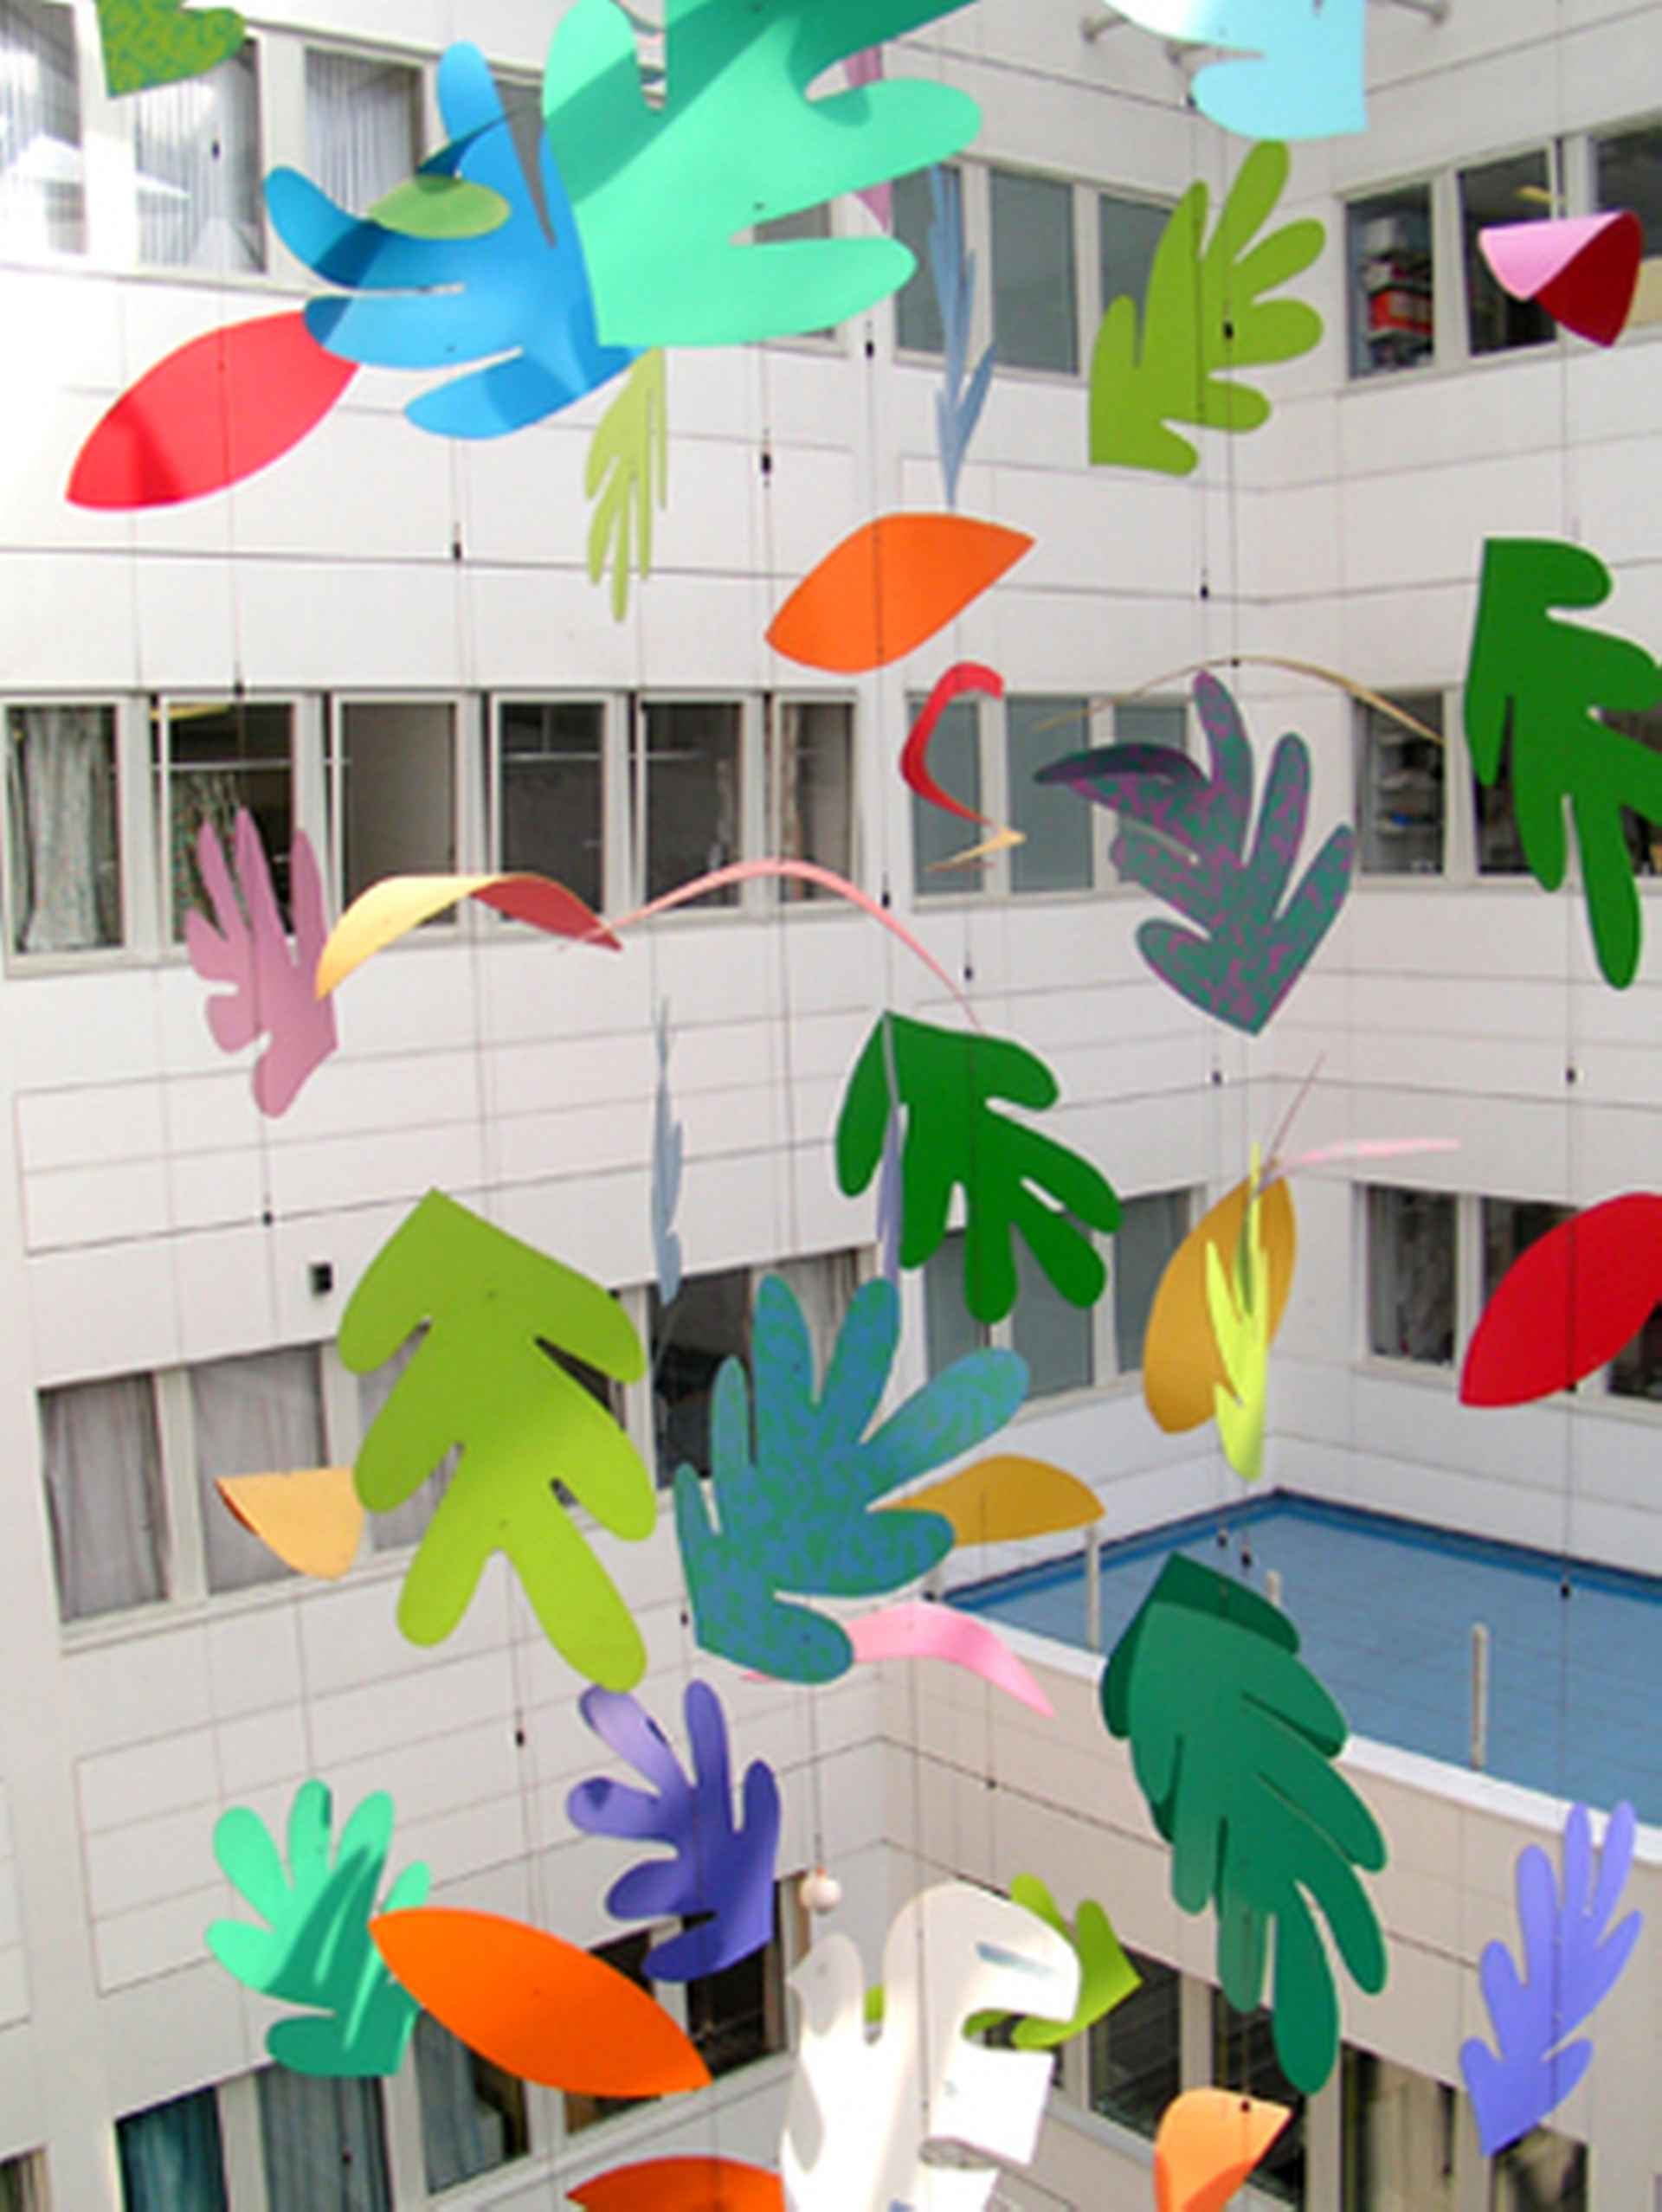 Playful artwork suspended in the central atrium by The Christie, Manchester